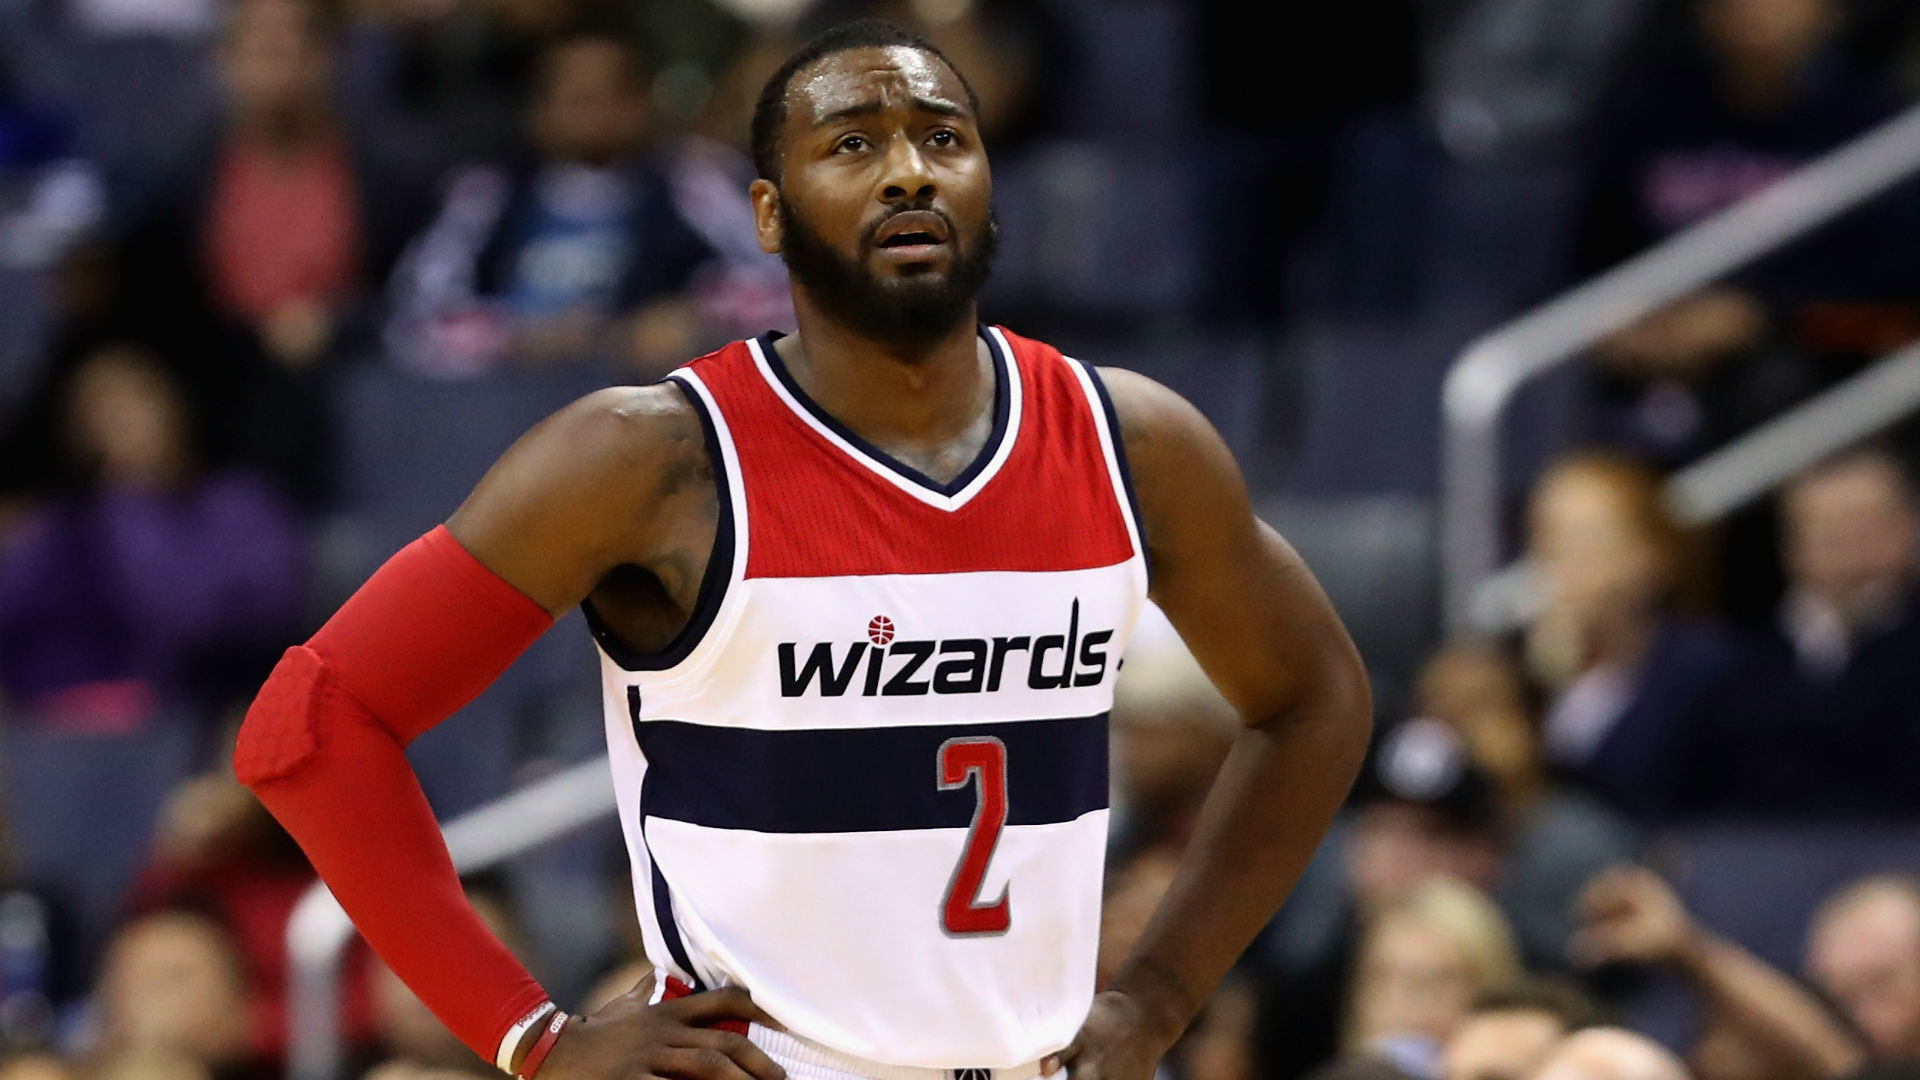 1920x1080 Wizards blew chance to help John Wall and themselves | NBA | Sporting News